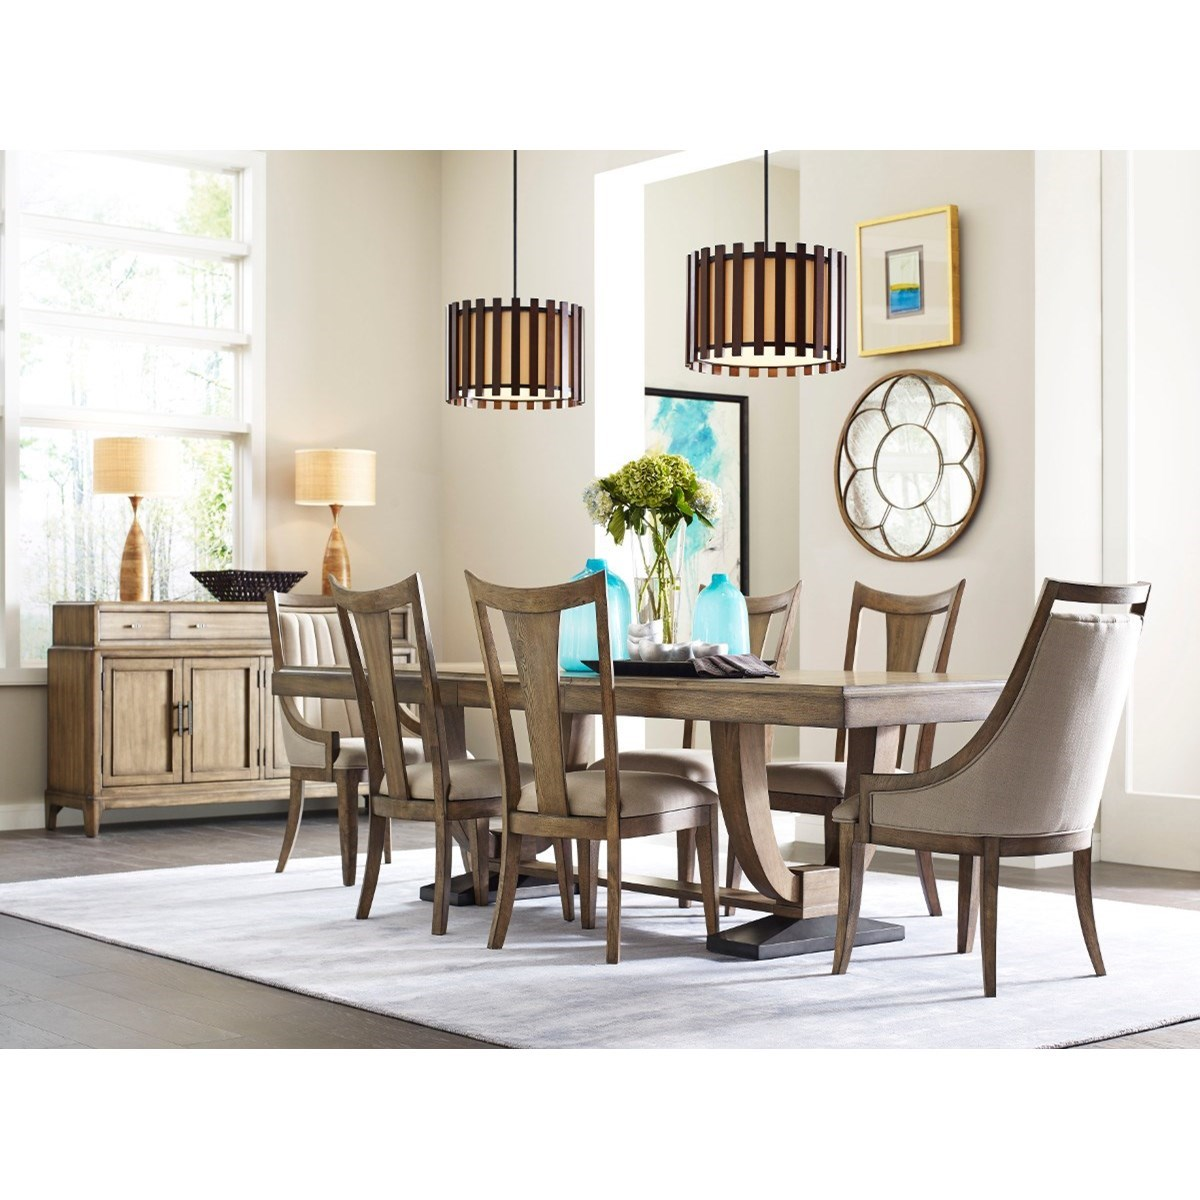 American Drew EVOKE  Formal Dining Room Group` - Item Number: 509 Dining Room Group 1